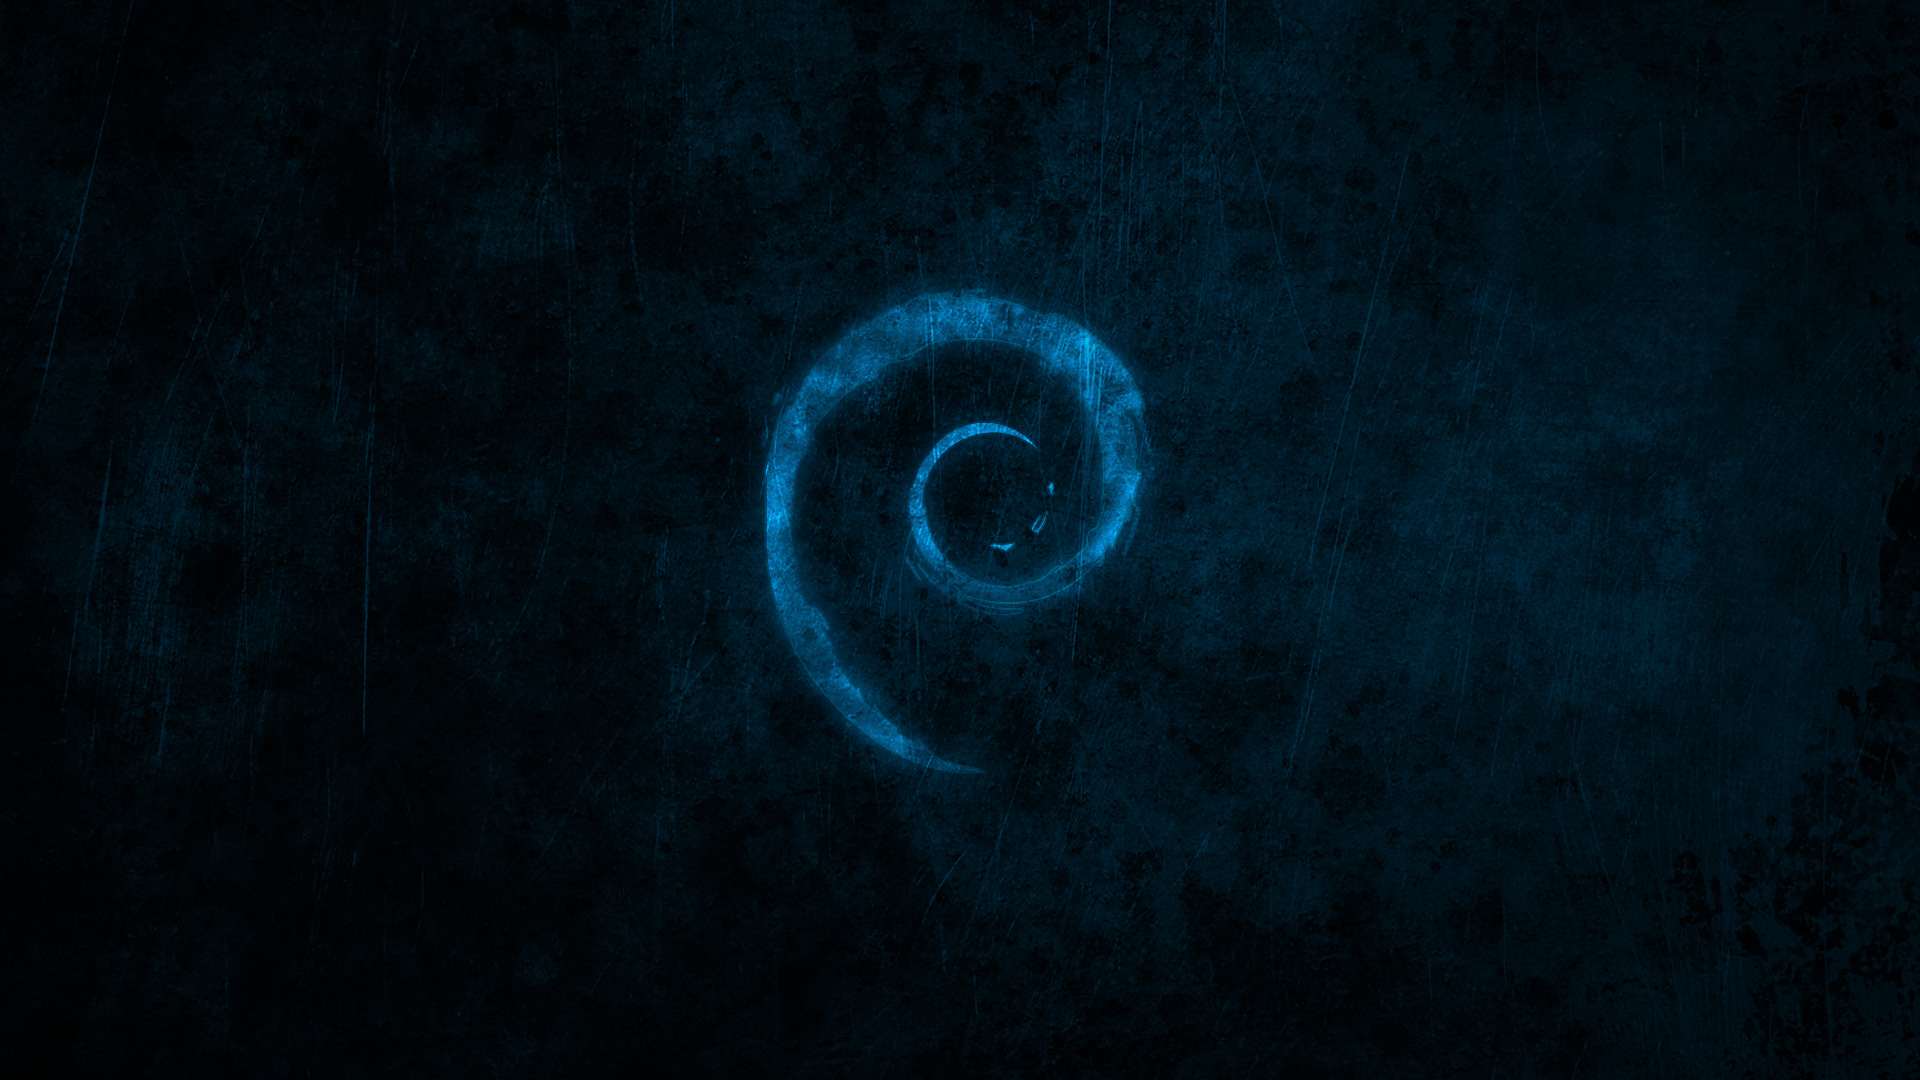 debian dark wallpapers hd 1080 by malkowitch customization wallpaper 1920x1080